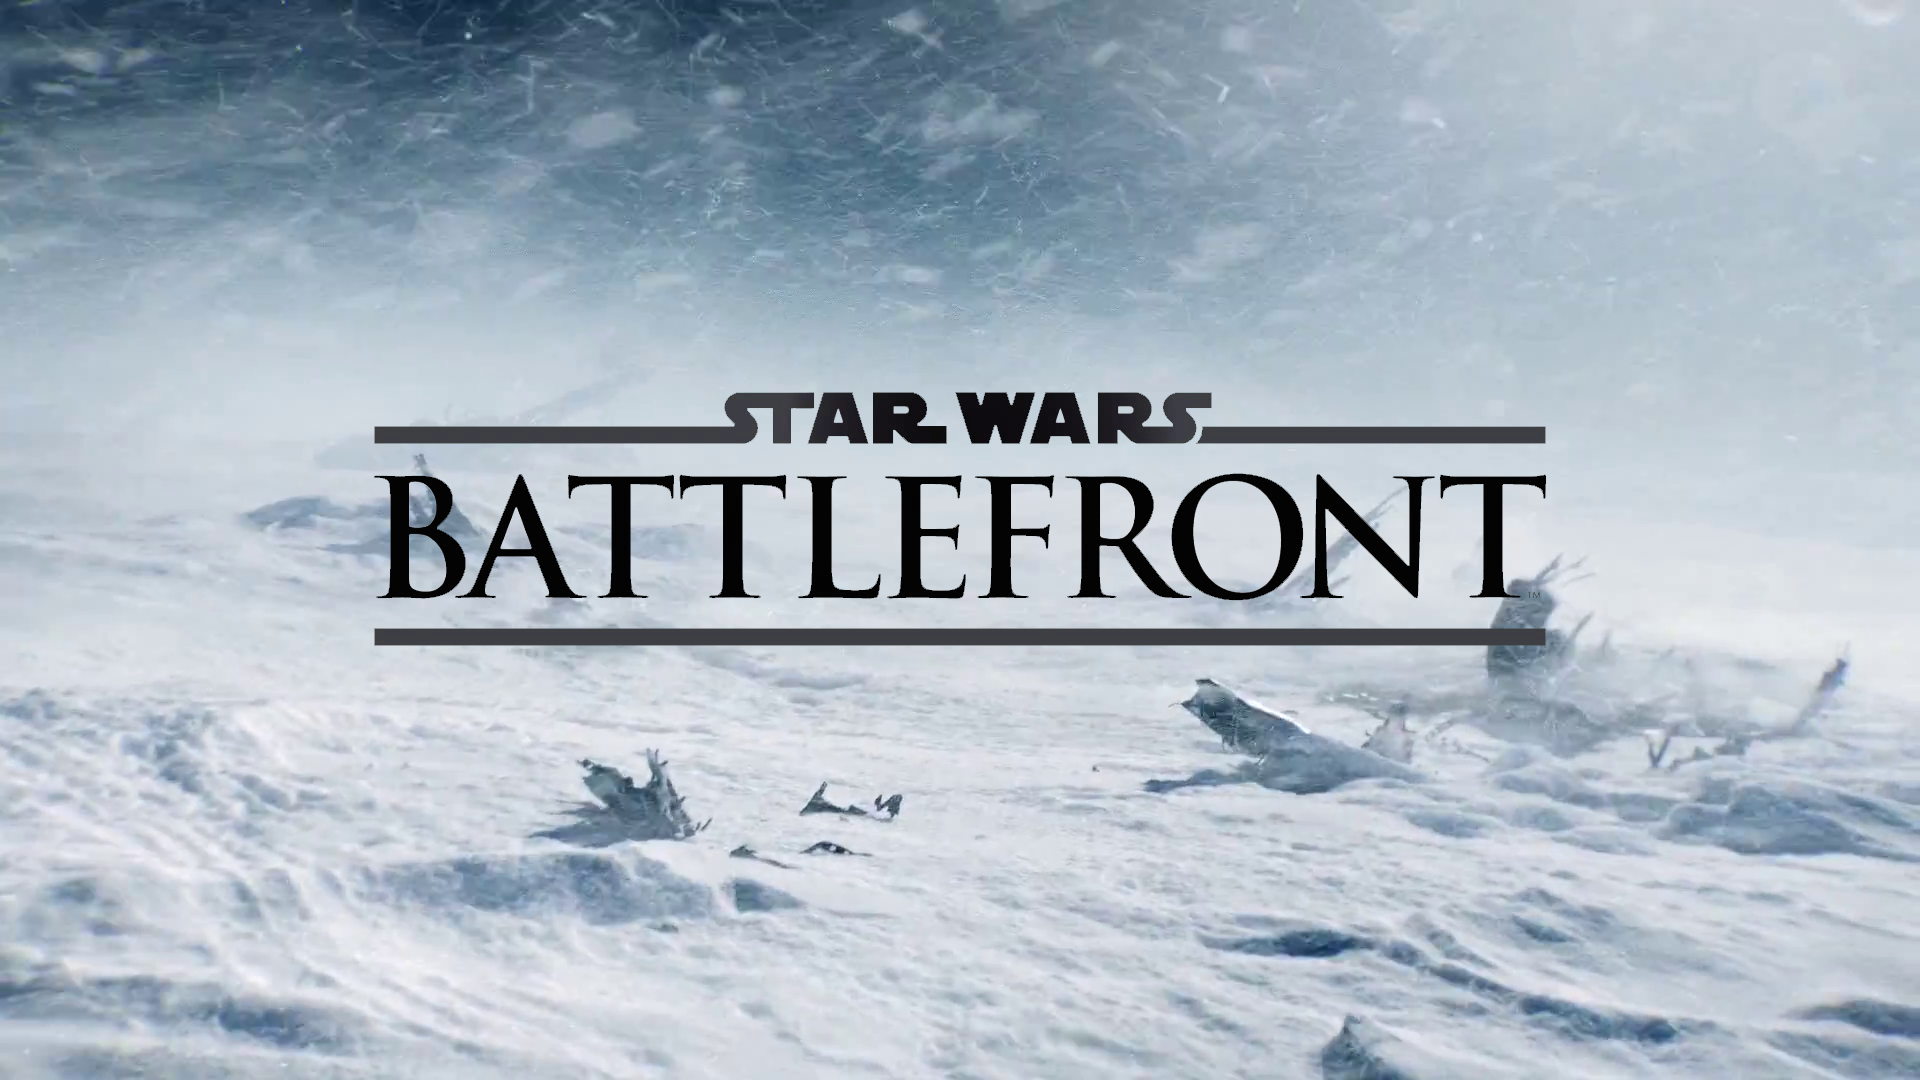 star wars battlefront out december 10 according to